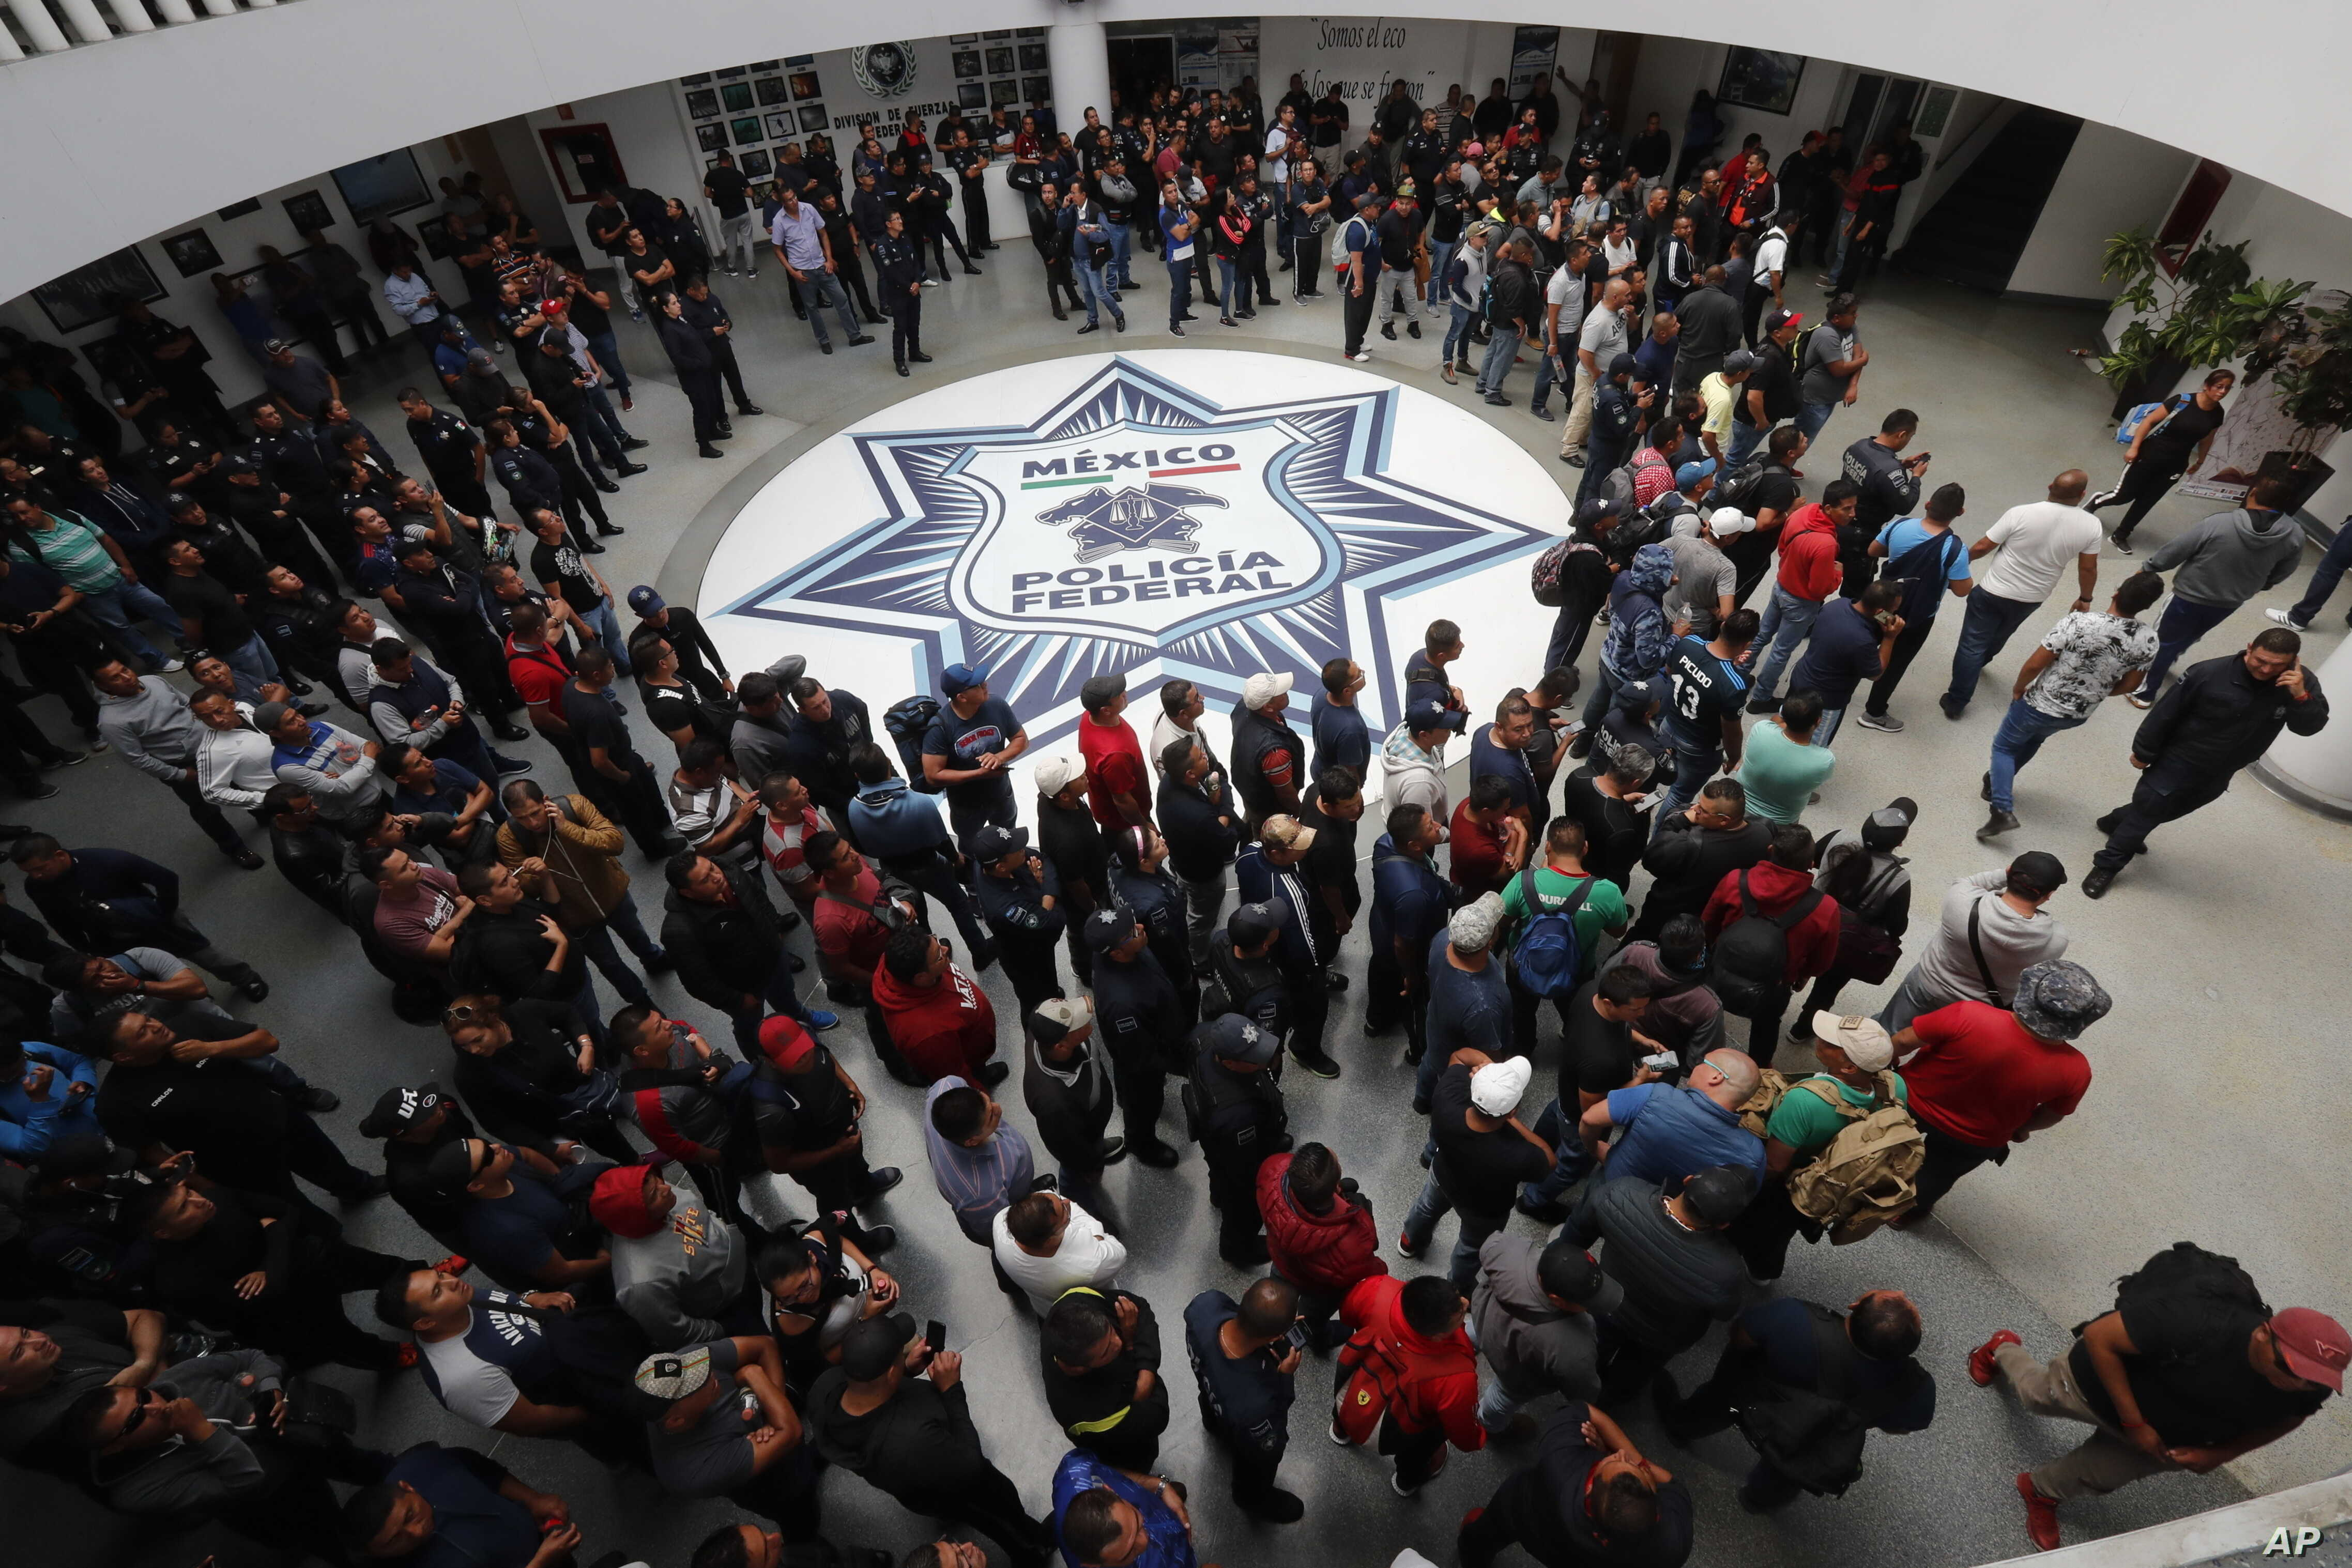 FILE - Dozens of Mexican federal police gather at a police command center in the Iztapalapa borough, in Mexico City, to protest against plans to force them into the newly formed National Guard, July 3, 2019.